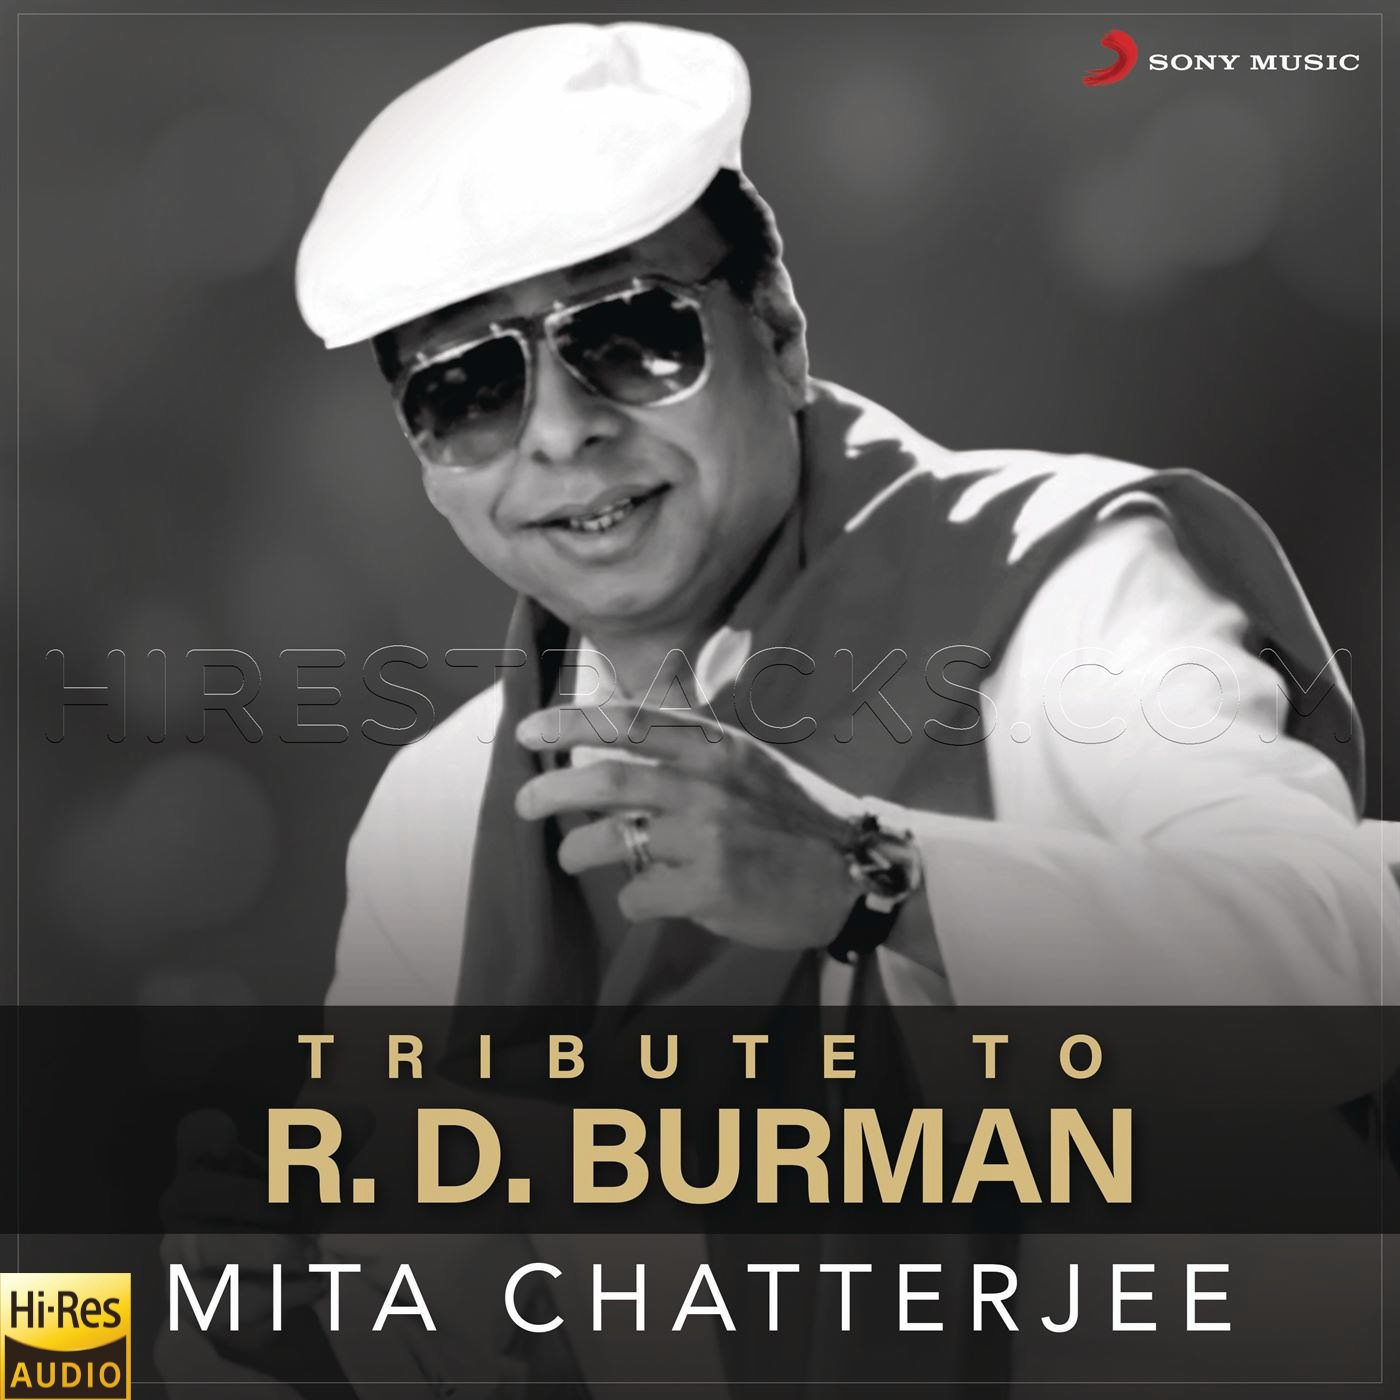 A Tribute to R.D. Burman (1994) (Mita Chatterjee) (24 BIT – 88.2 KHZ)